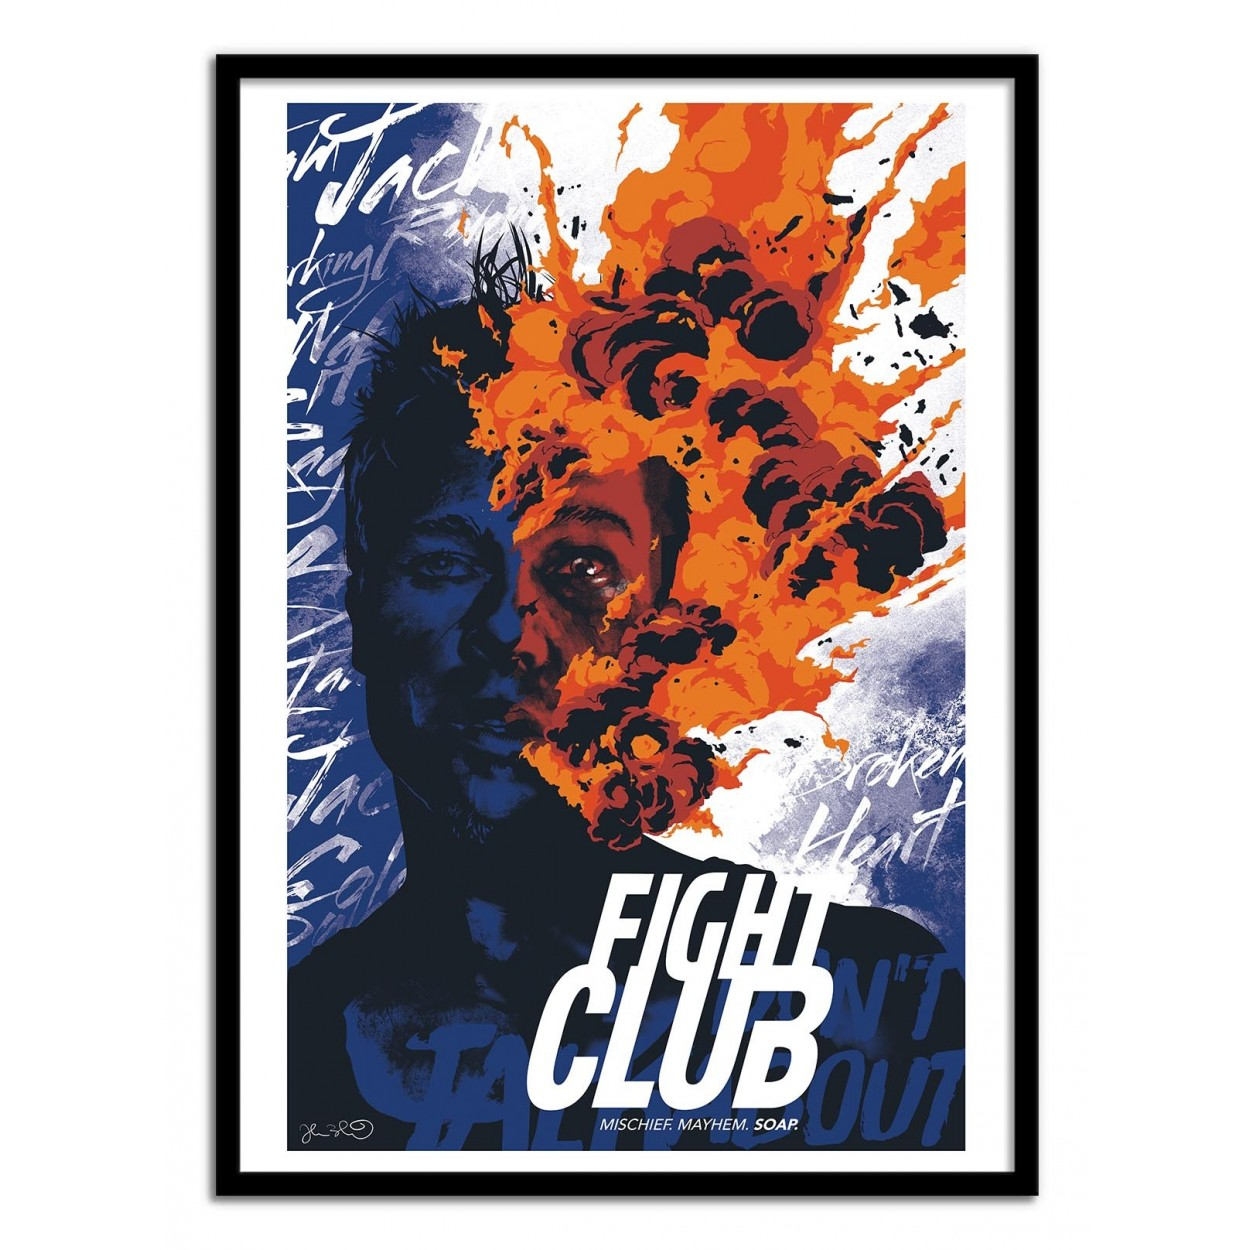 affiche art poster print manga comic movie fight club fan art inspiration joshua budich. Black Bedroom Furniture Sets. Home Design Ideas